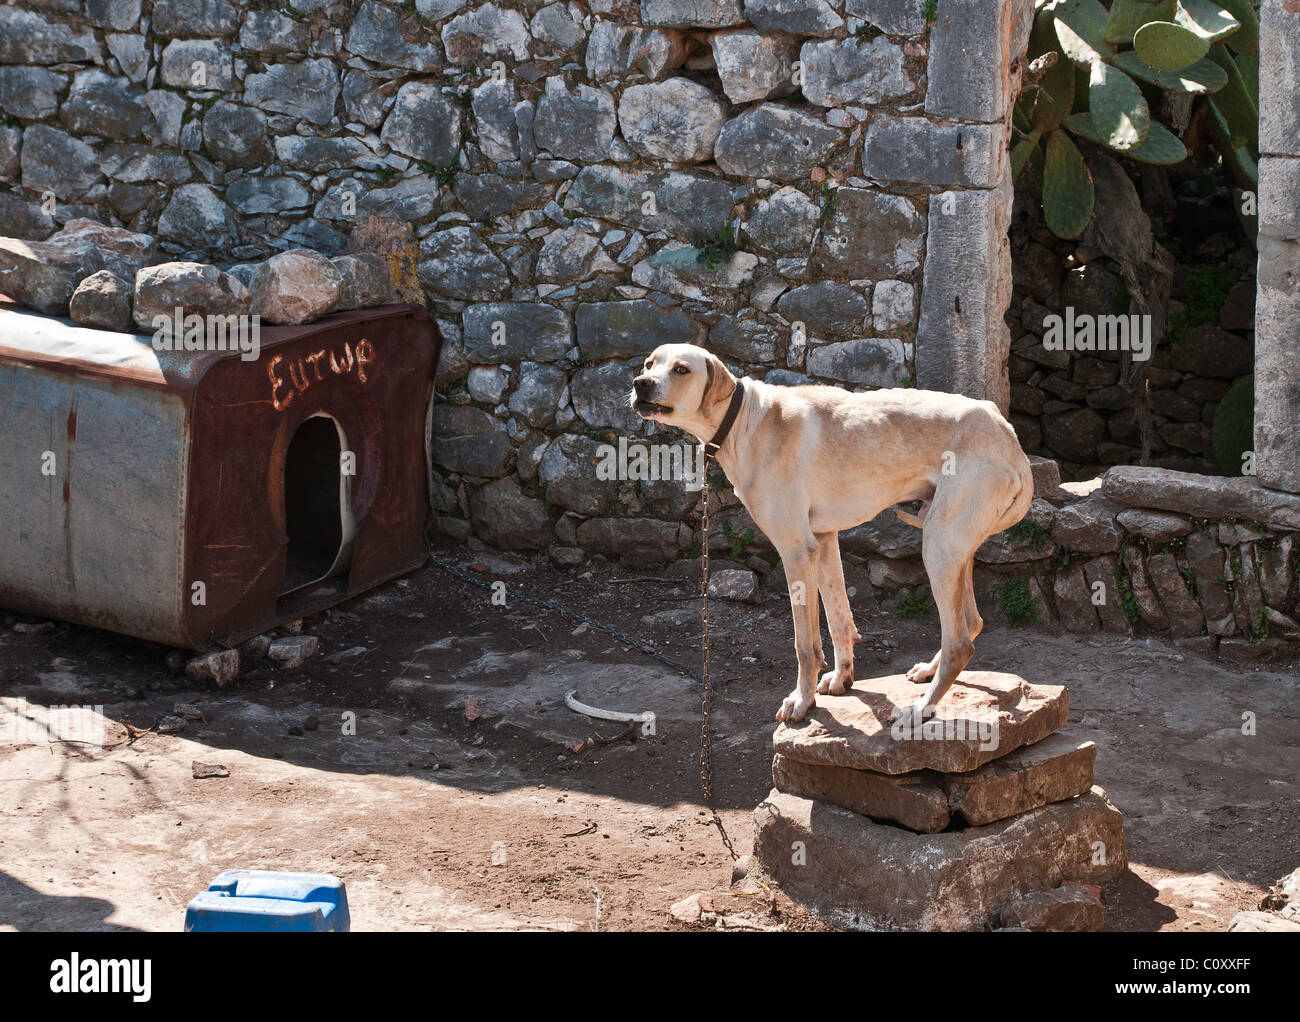 Angry, scared dog with tail between its legs, Mani, southern Peloponnese, Greece - Stock Image